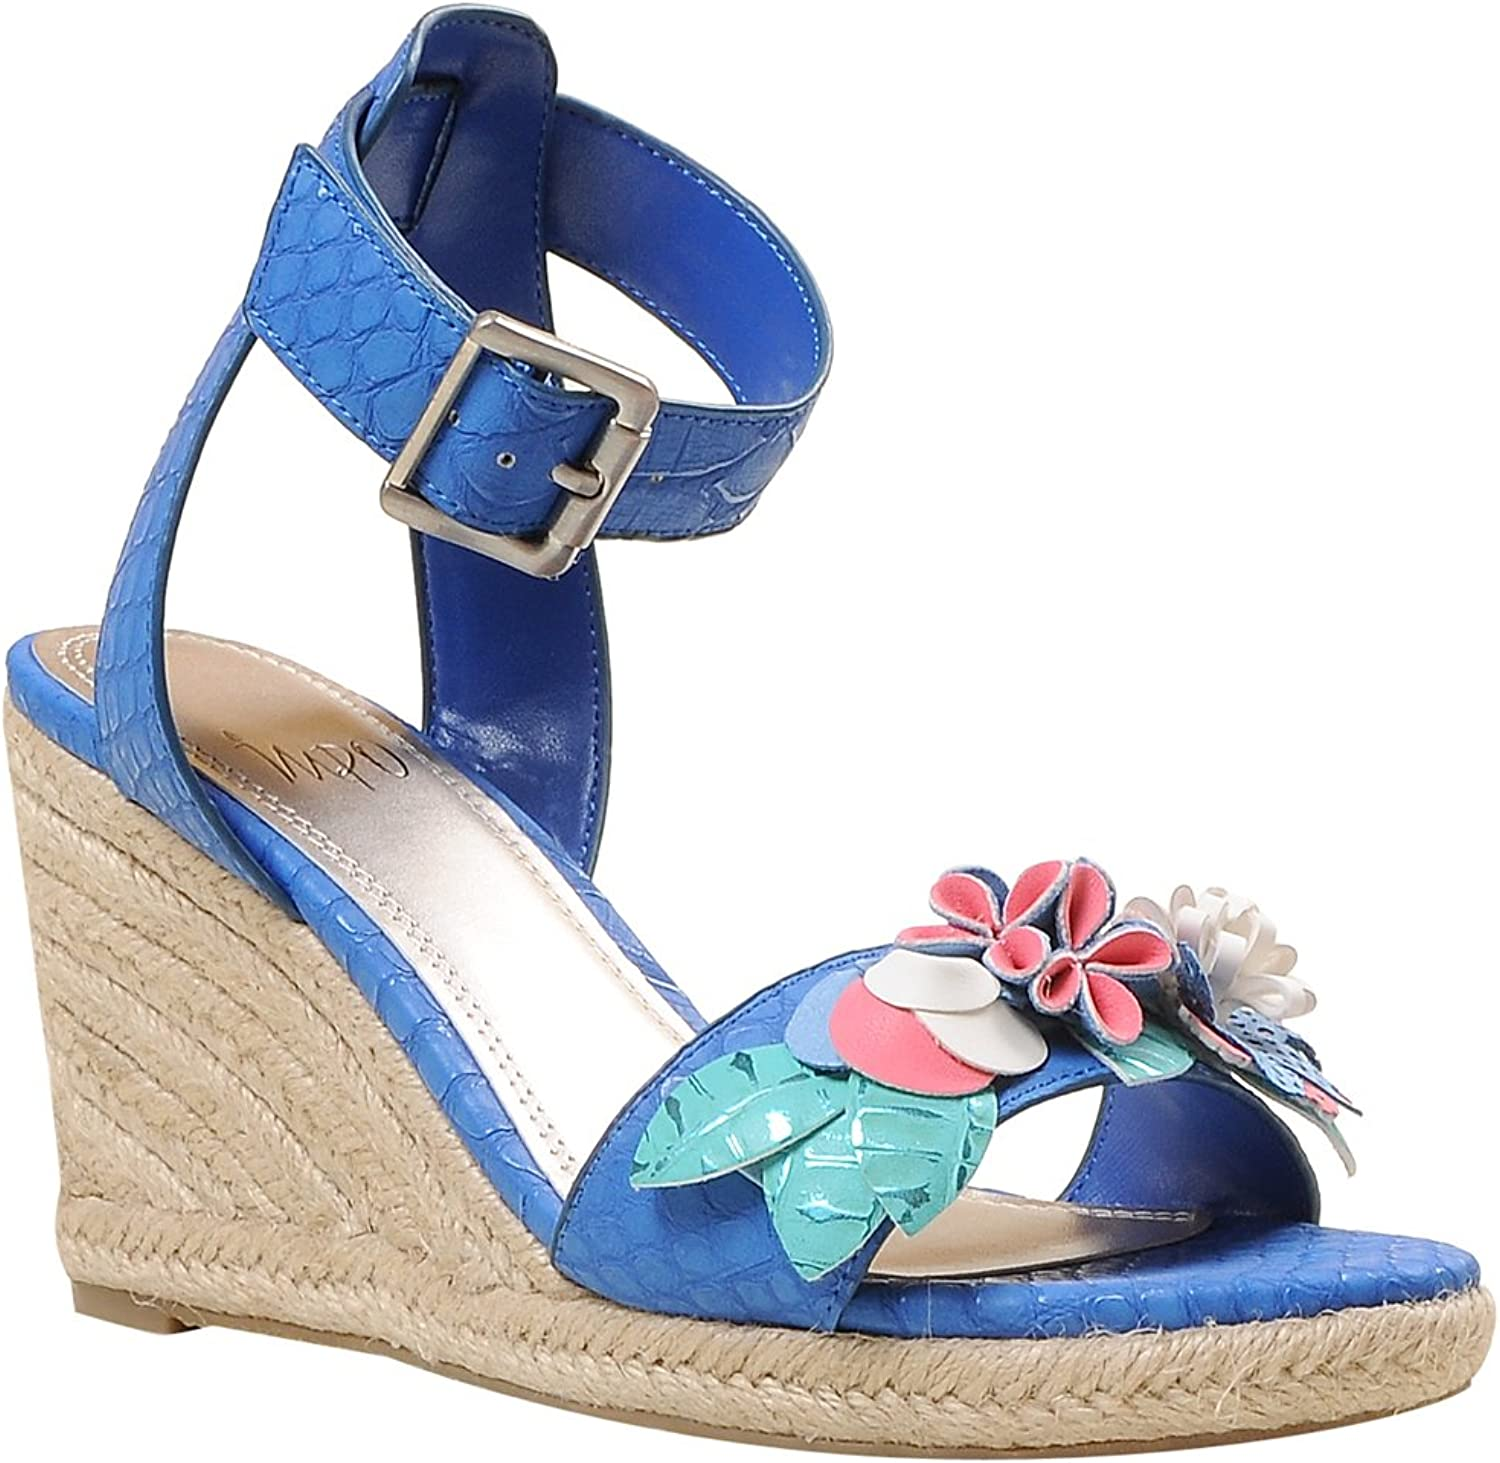 Impo TYLEEN Wedge Sandal, Cobalt bluee Multicolor